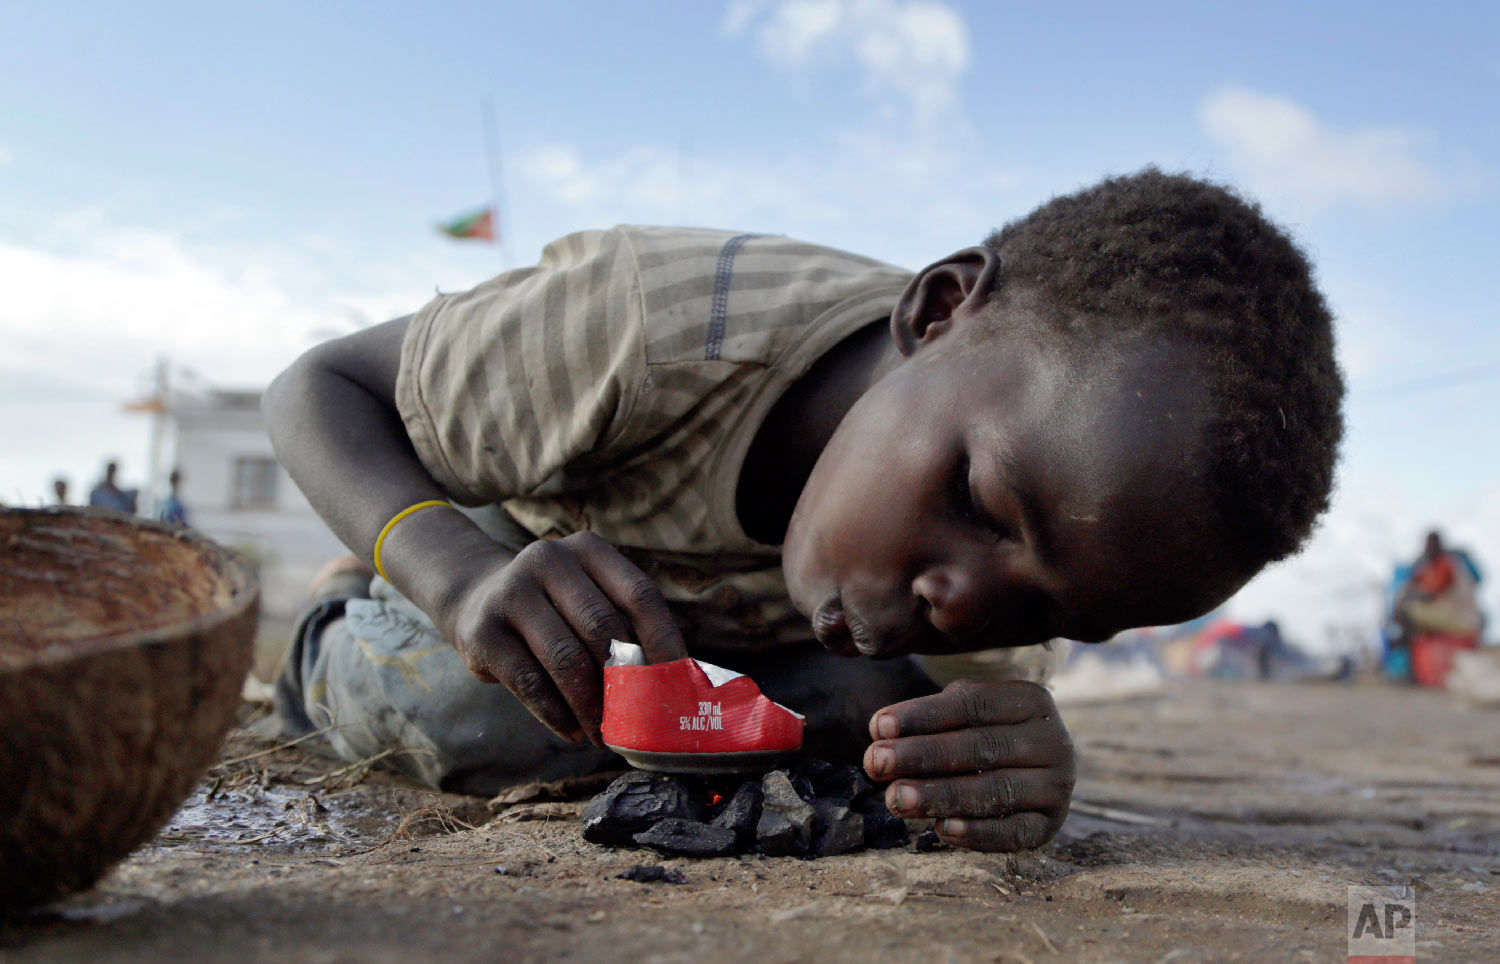 A young boy makes fire as he plays in Buzi district, 200 kilometers (120 miles) outside Beira, Mozambique, on Saturday, March 23, 2019. (AP Photo/Themba Hadebe)